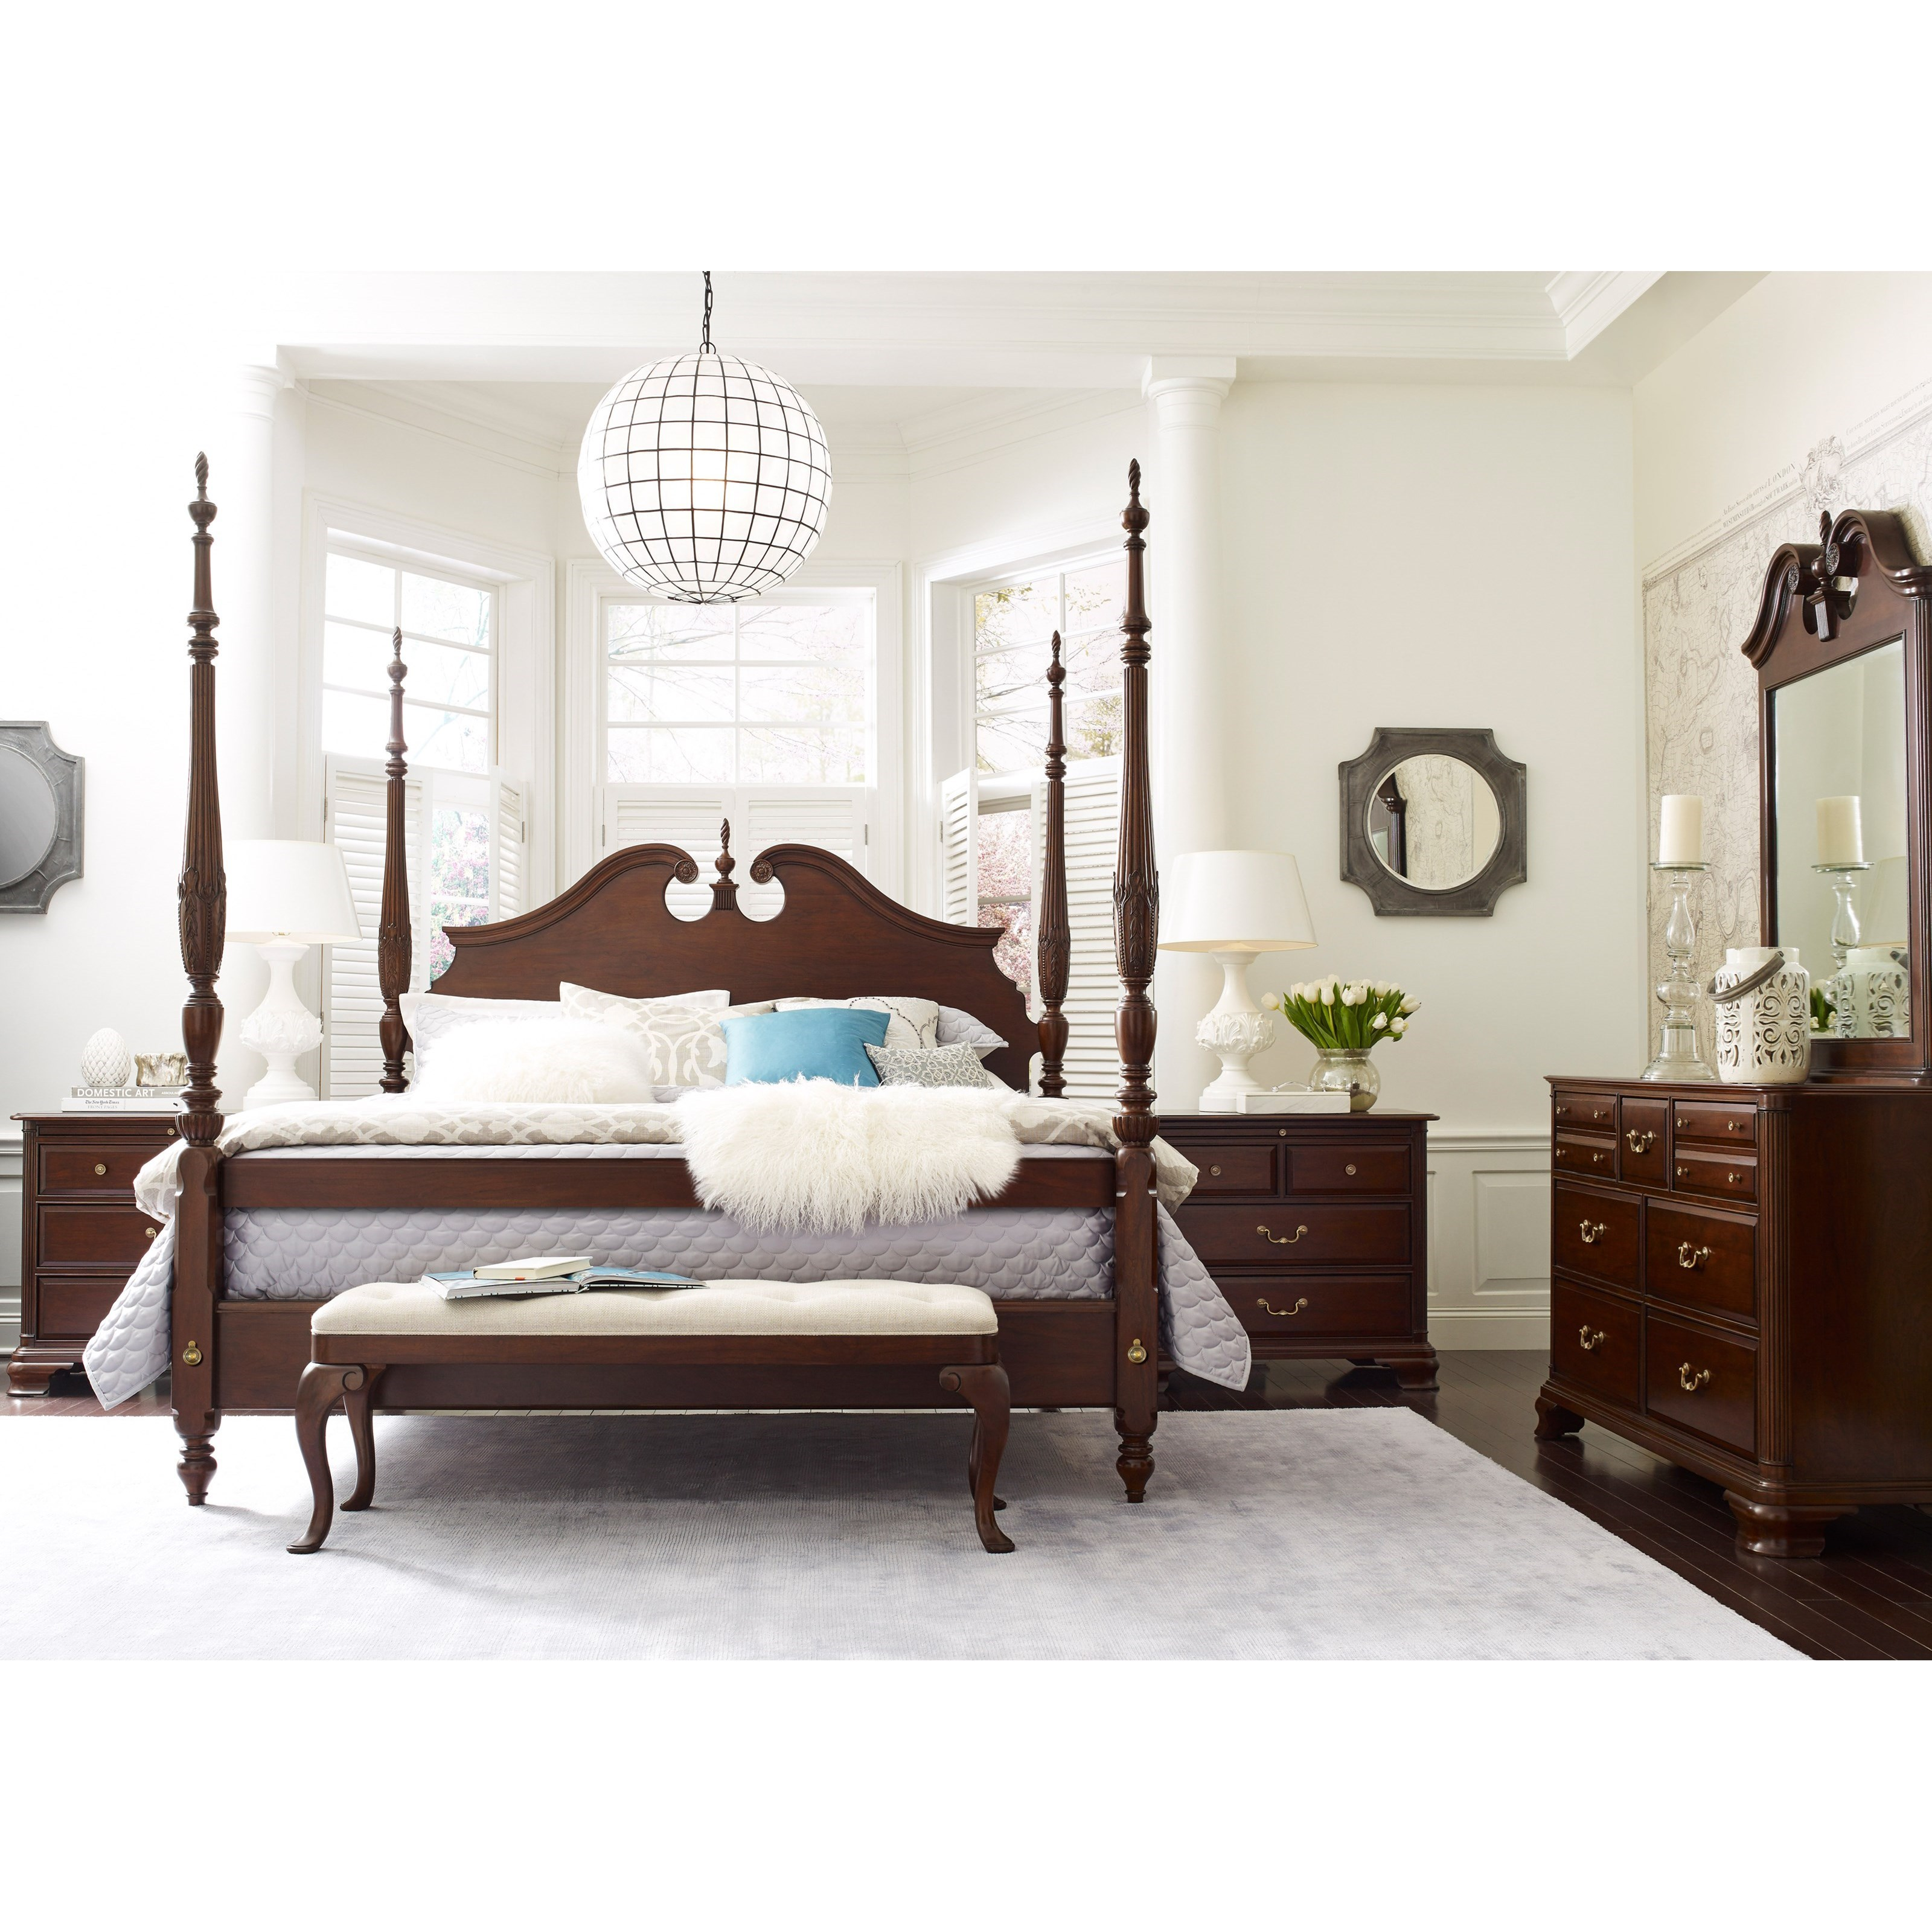 Hadleigh Queen Bedroom Group by Kincaid Furniture at Johnny Janosik